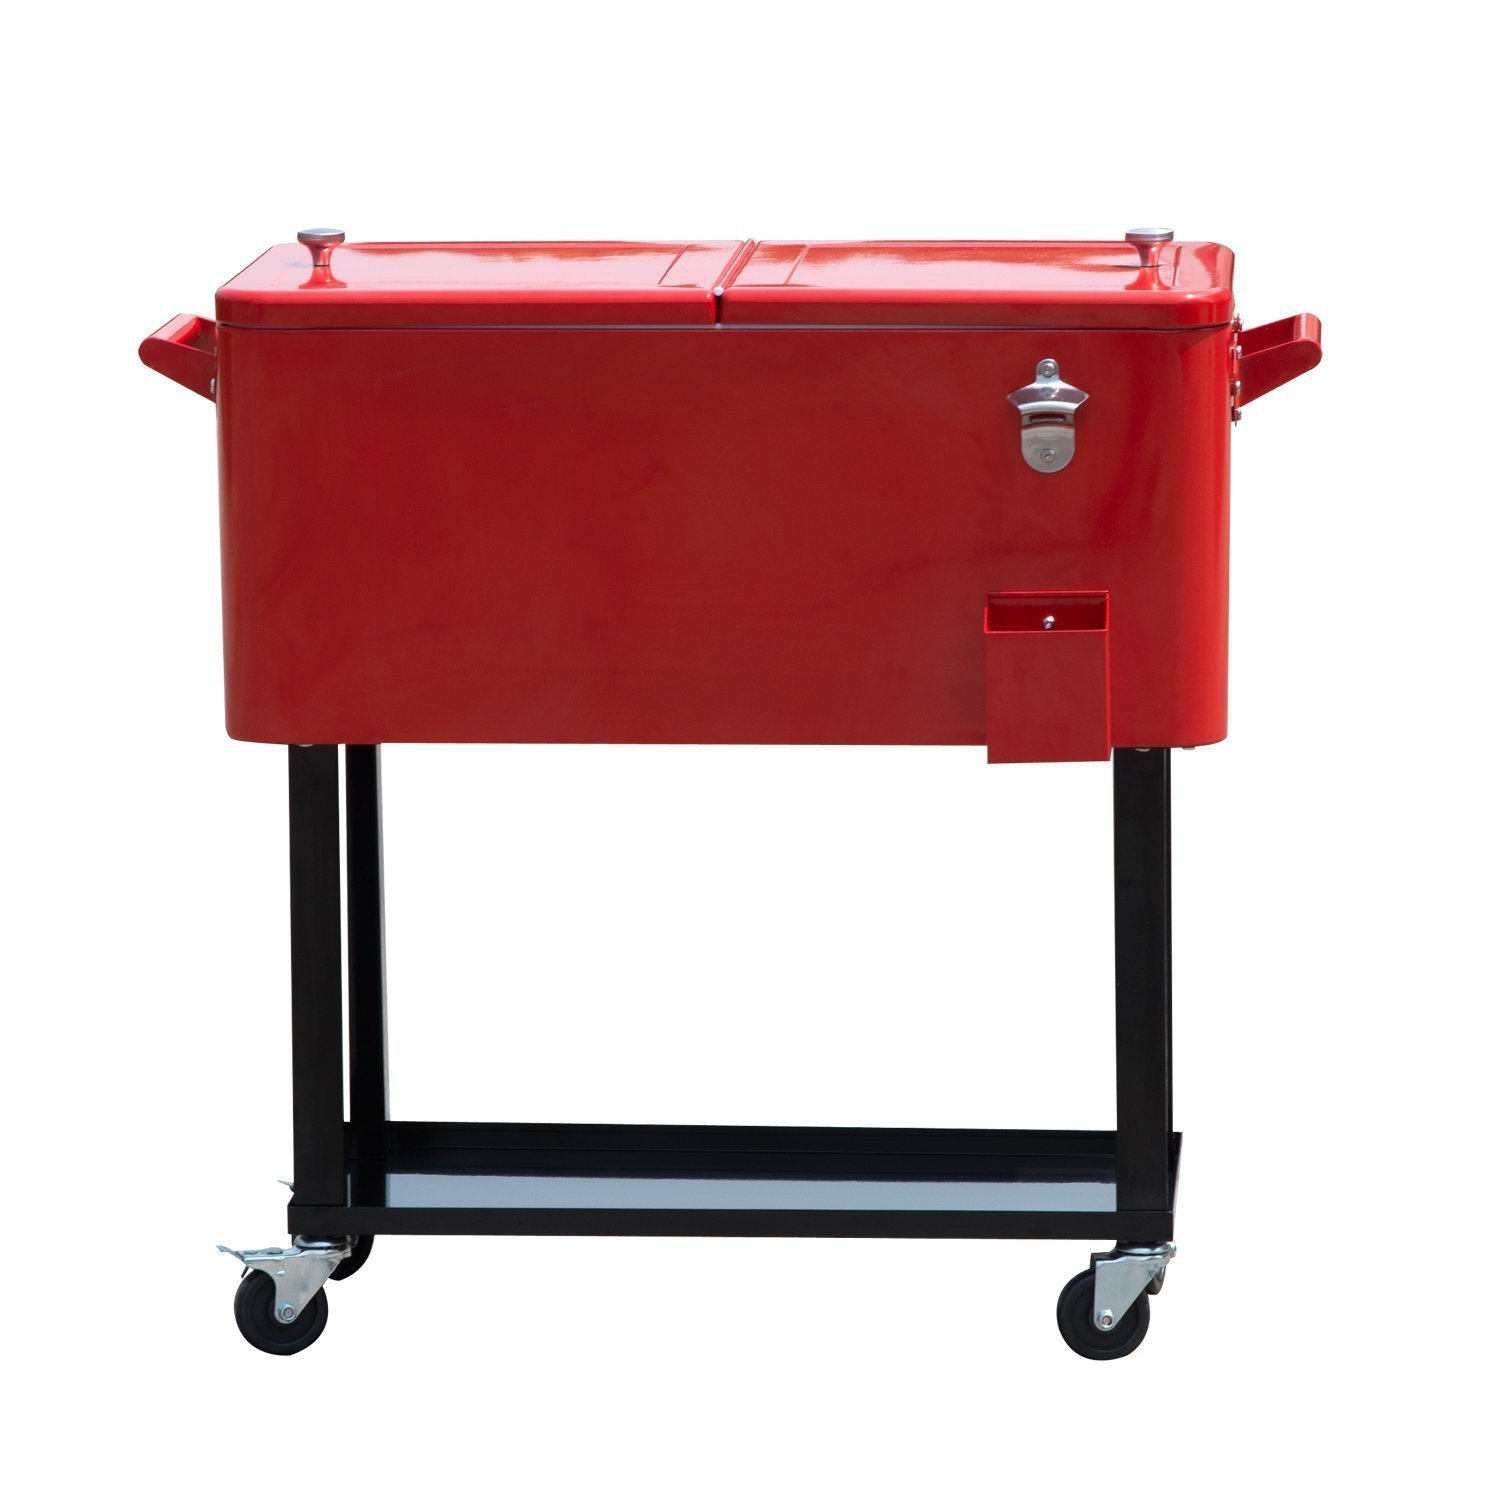 Tenive 80-quart Retro Cooler Patio Rolling Matel Cooler Steel Ice Chest Portable Patio Party Bar Drink Entertaining Outdoor Cooler Cart - Red